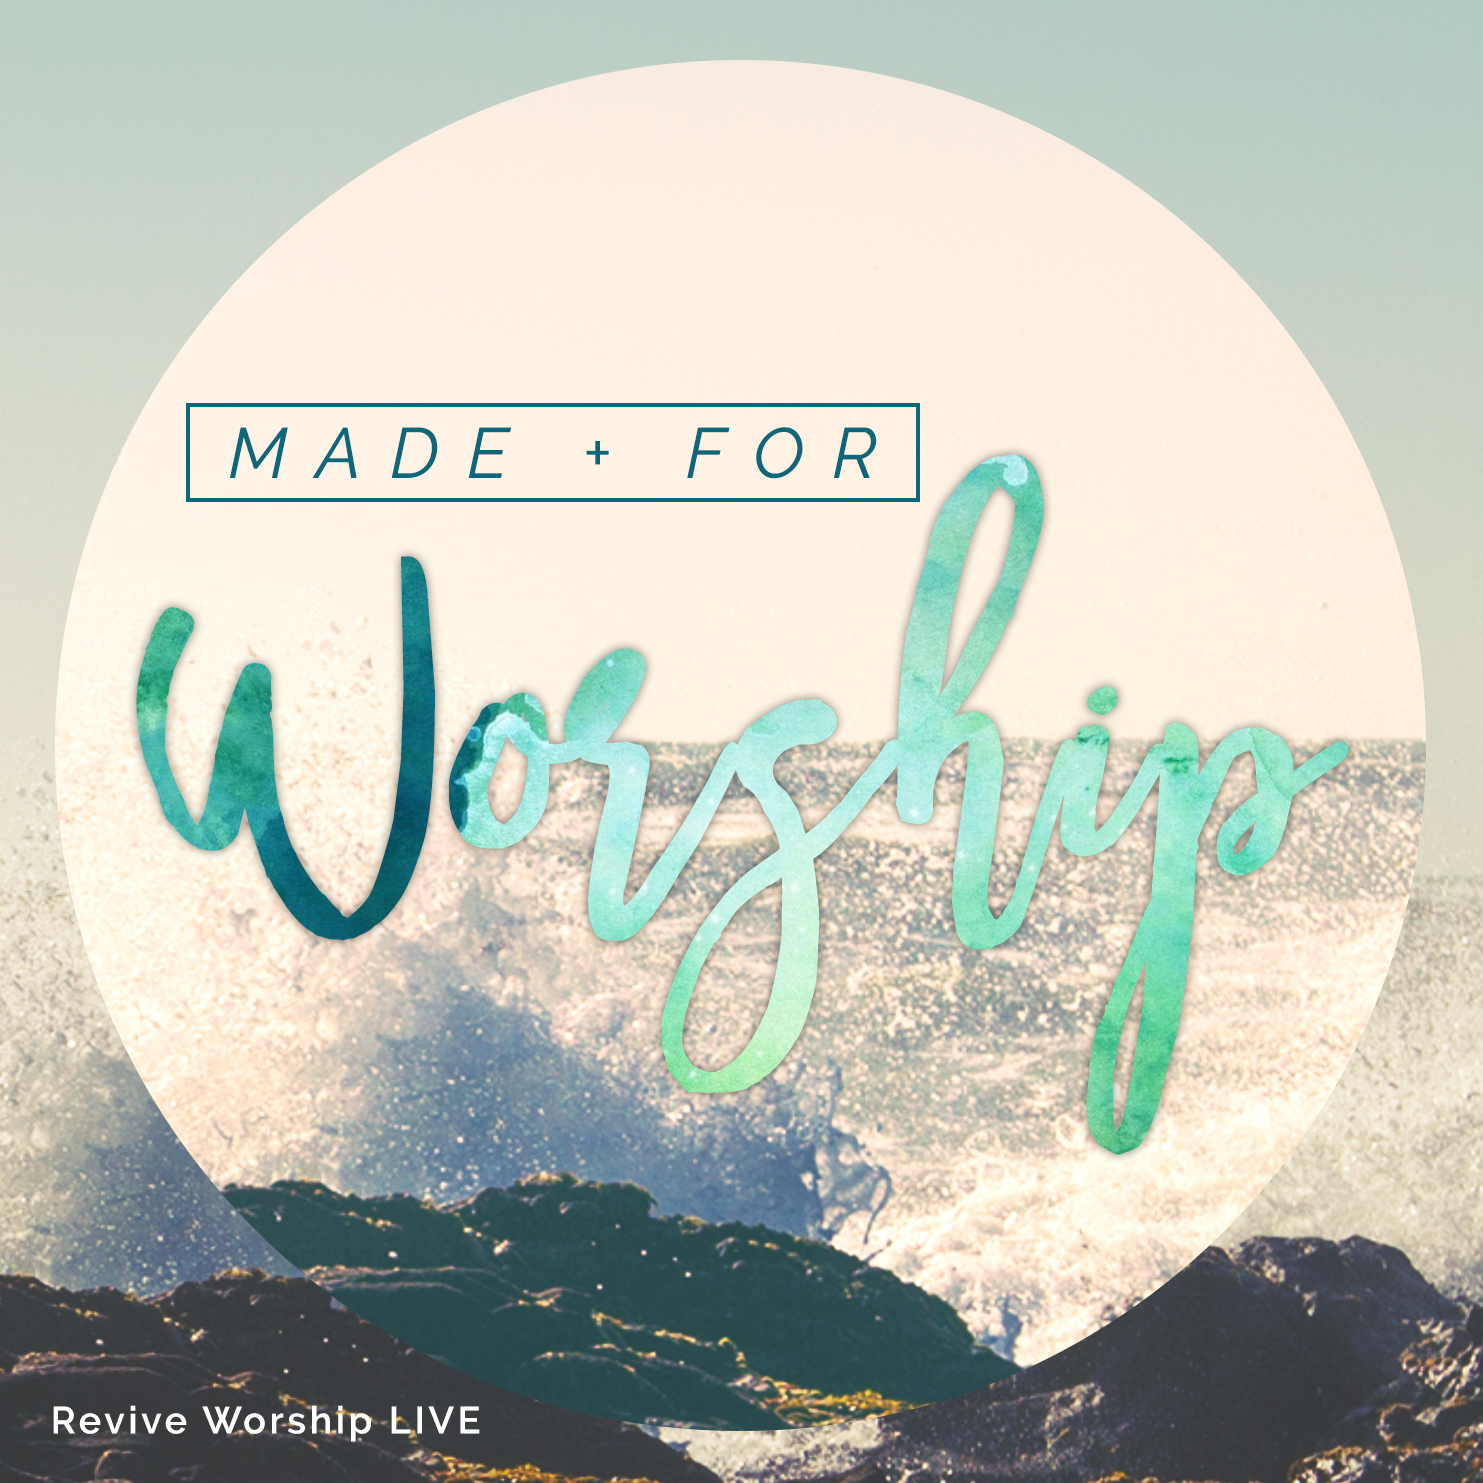 Made For Worship - Revive Worship LIVE